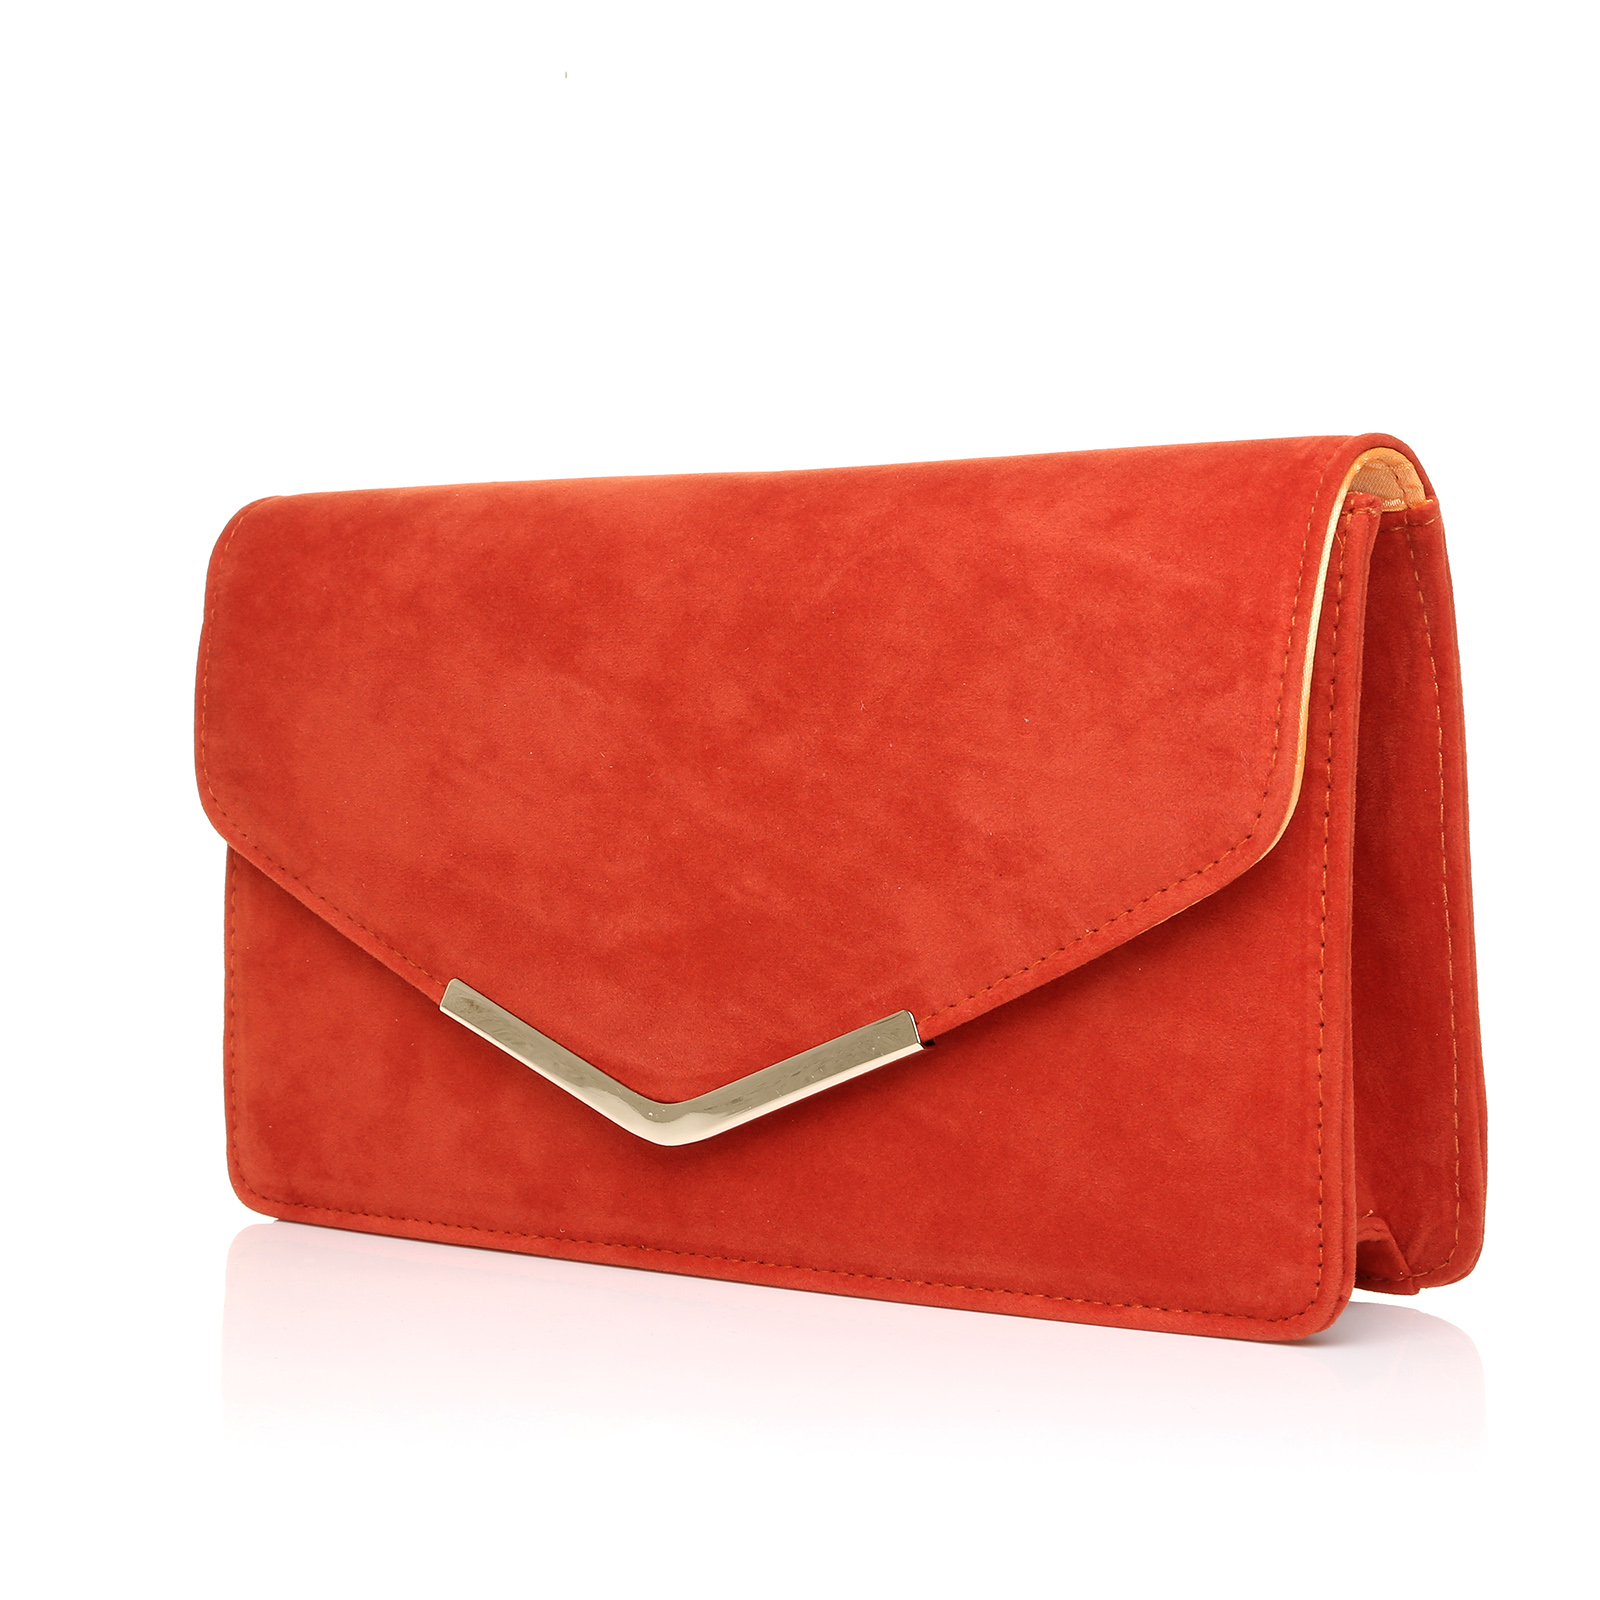 A thin oversized envelope clutch bag made from a straw canvas material. The perfect accent with a dress or a t-shirt and jeans. Zipper and snap button closure, optional gold chain strap.